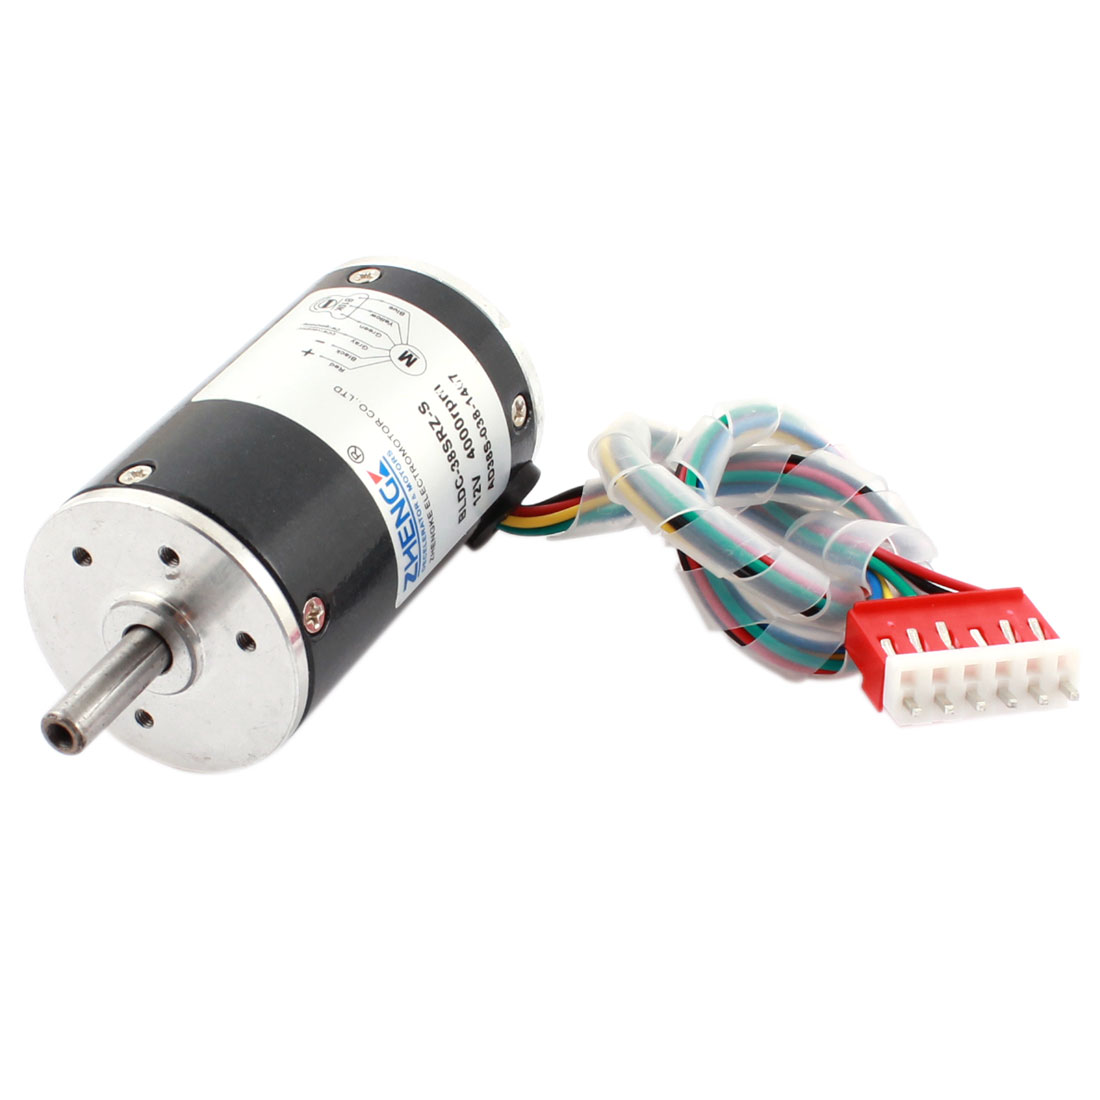 DC 12V 4000RPM High Speed 38mm Diameter Low Noise Helicopter Disc Brushless Motor Gray